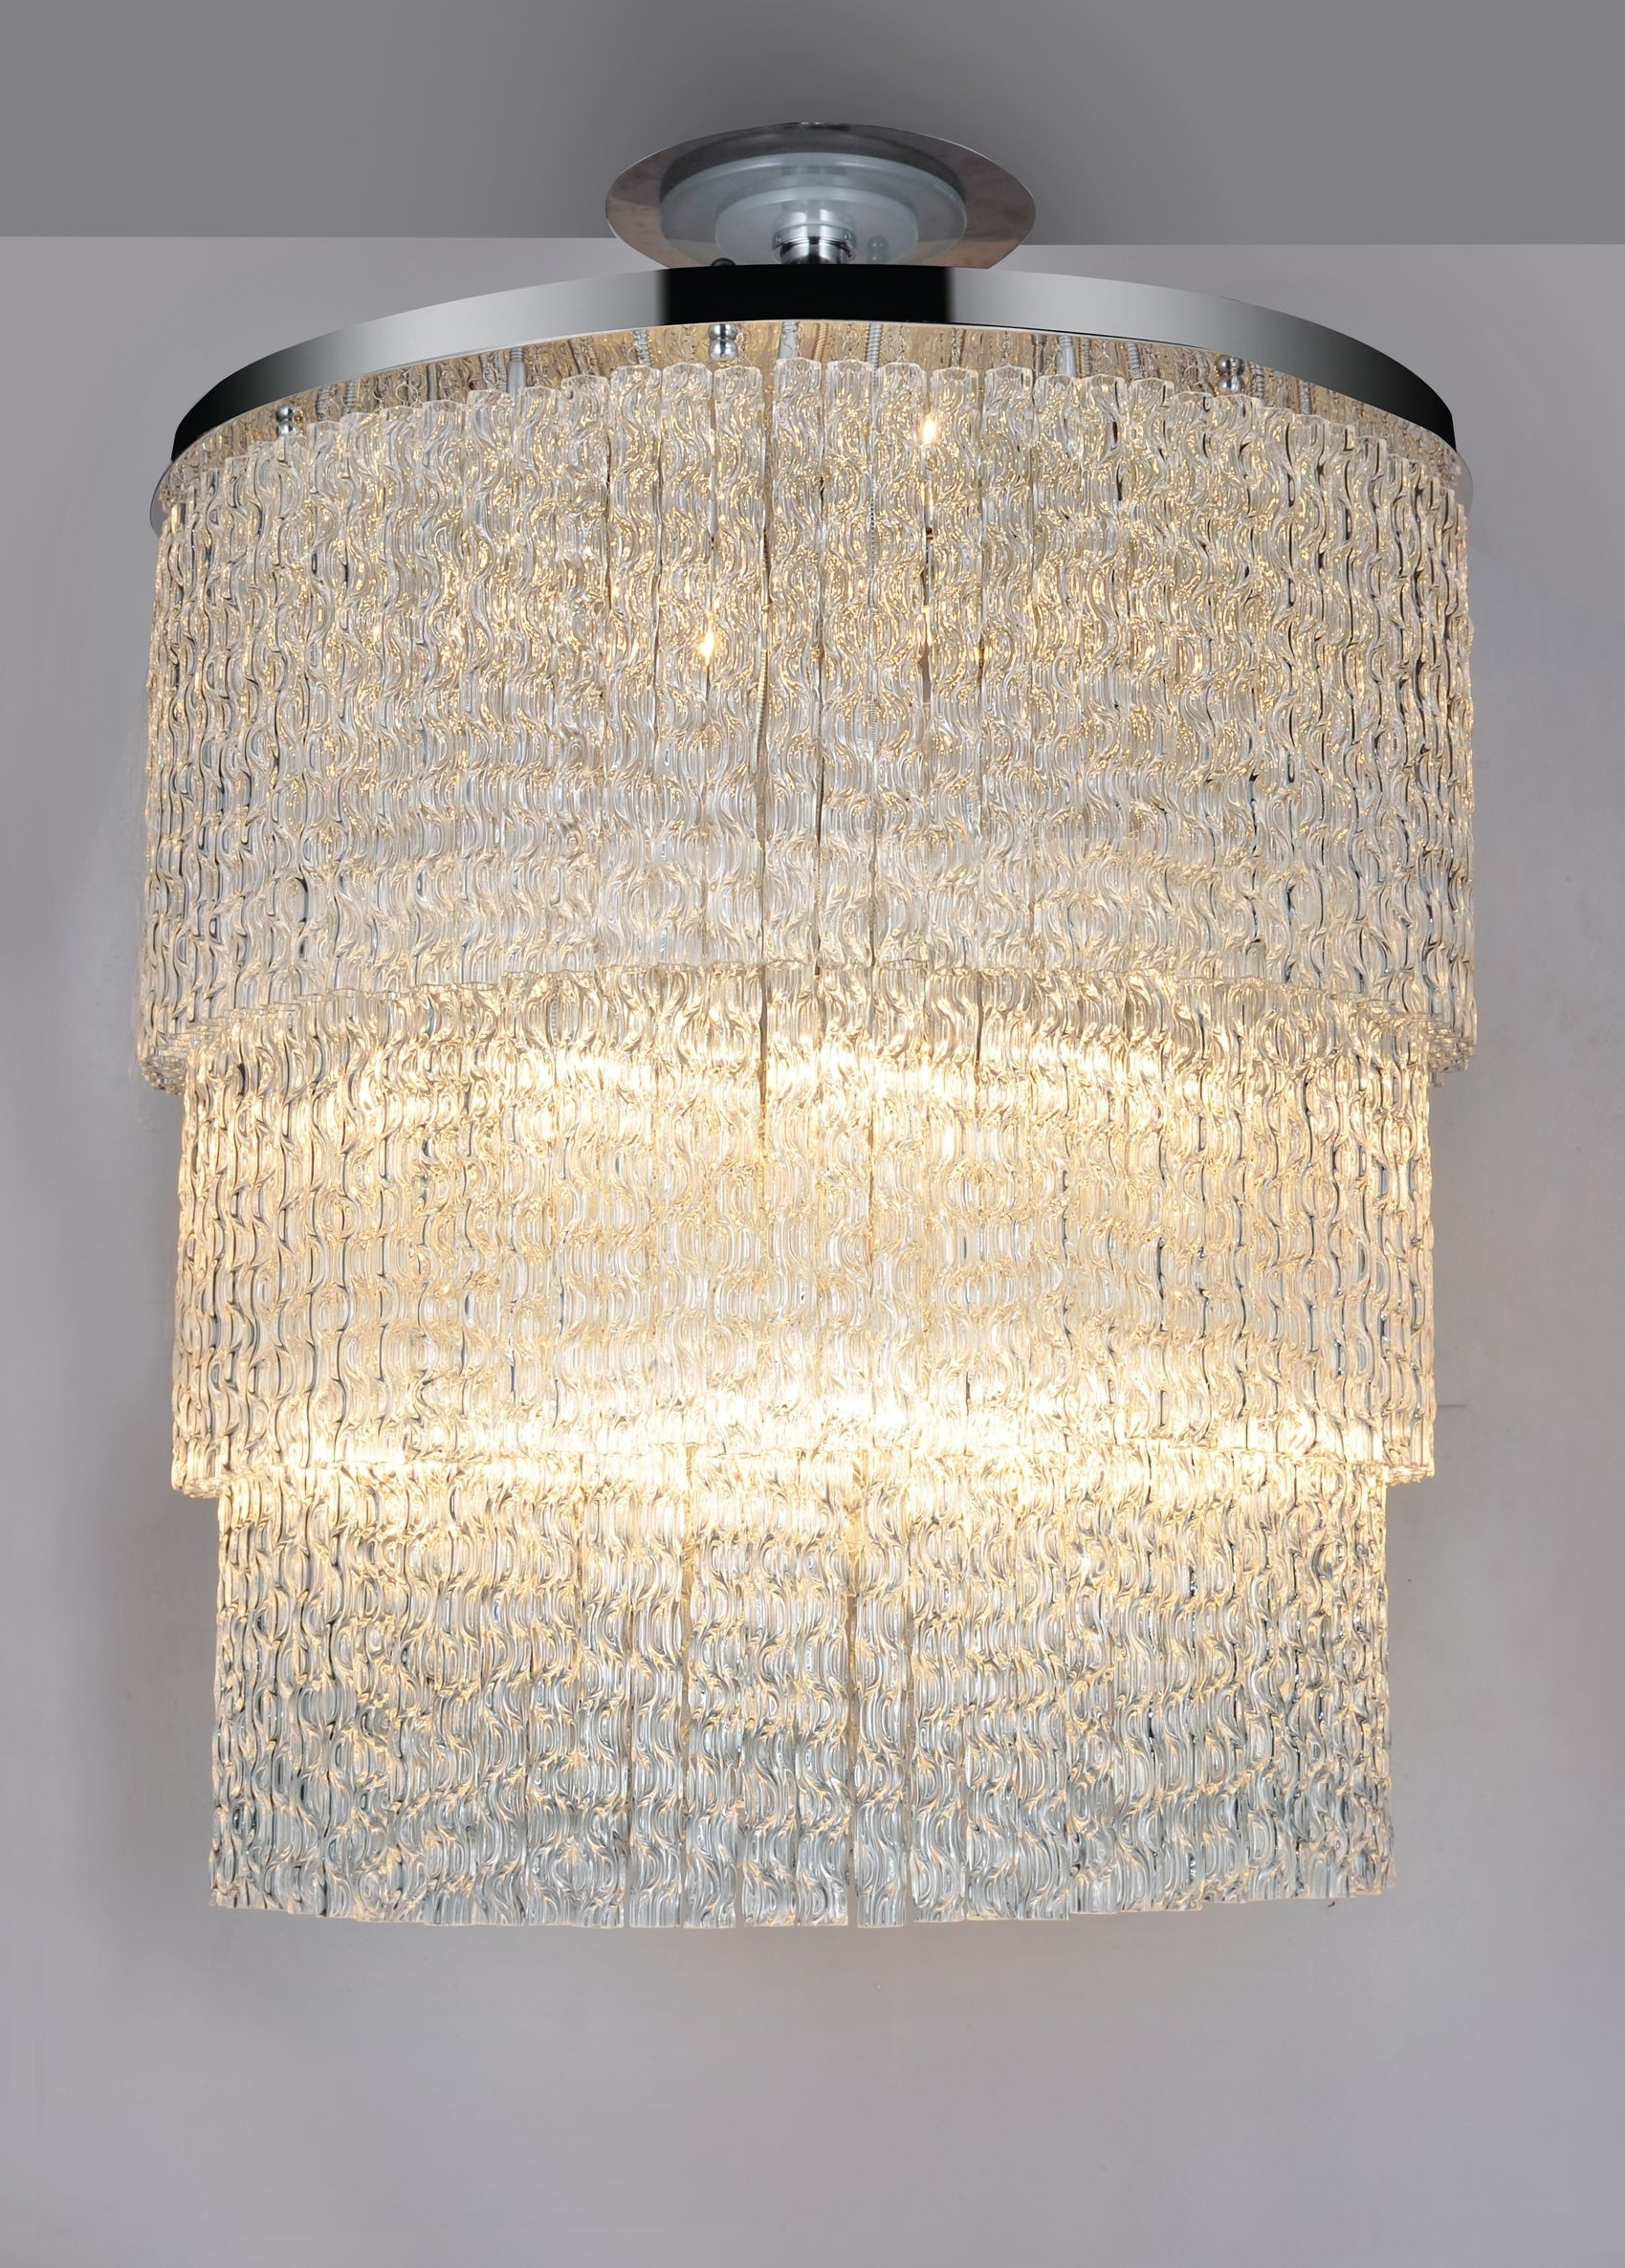 Widely Used Chandeliers : Wonderful Italian Chandeliers Fresh Contemporary Within Modern Italian Chandeliers (View 16 of 20)